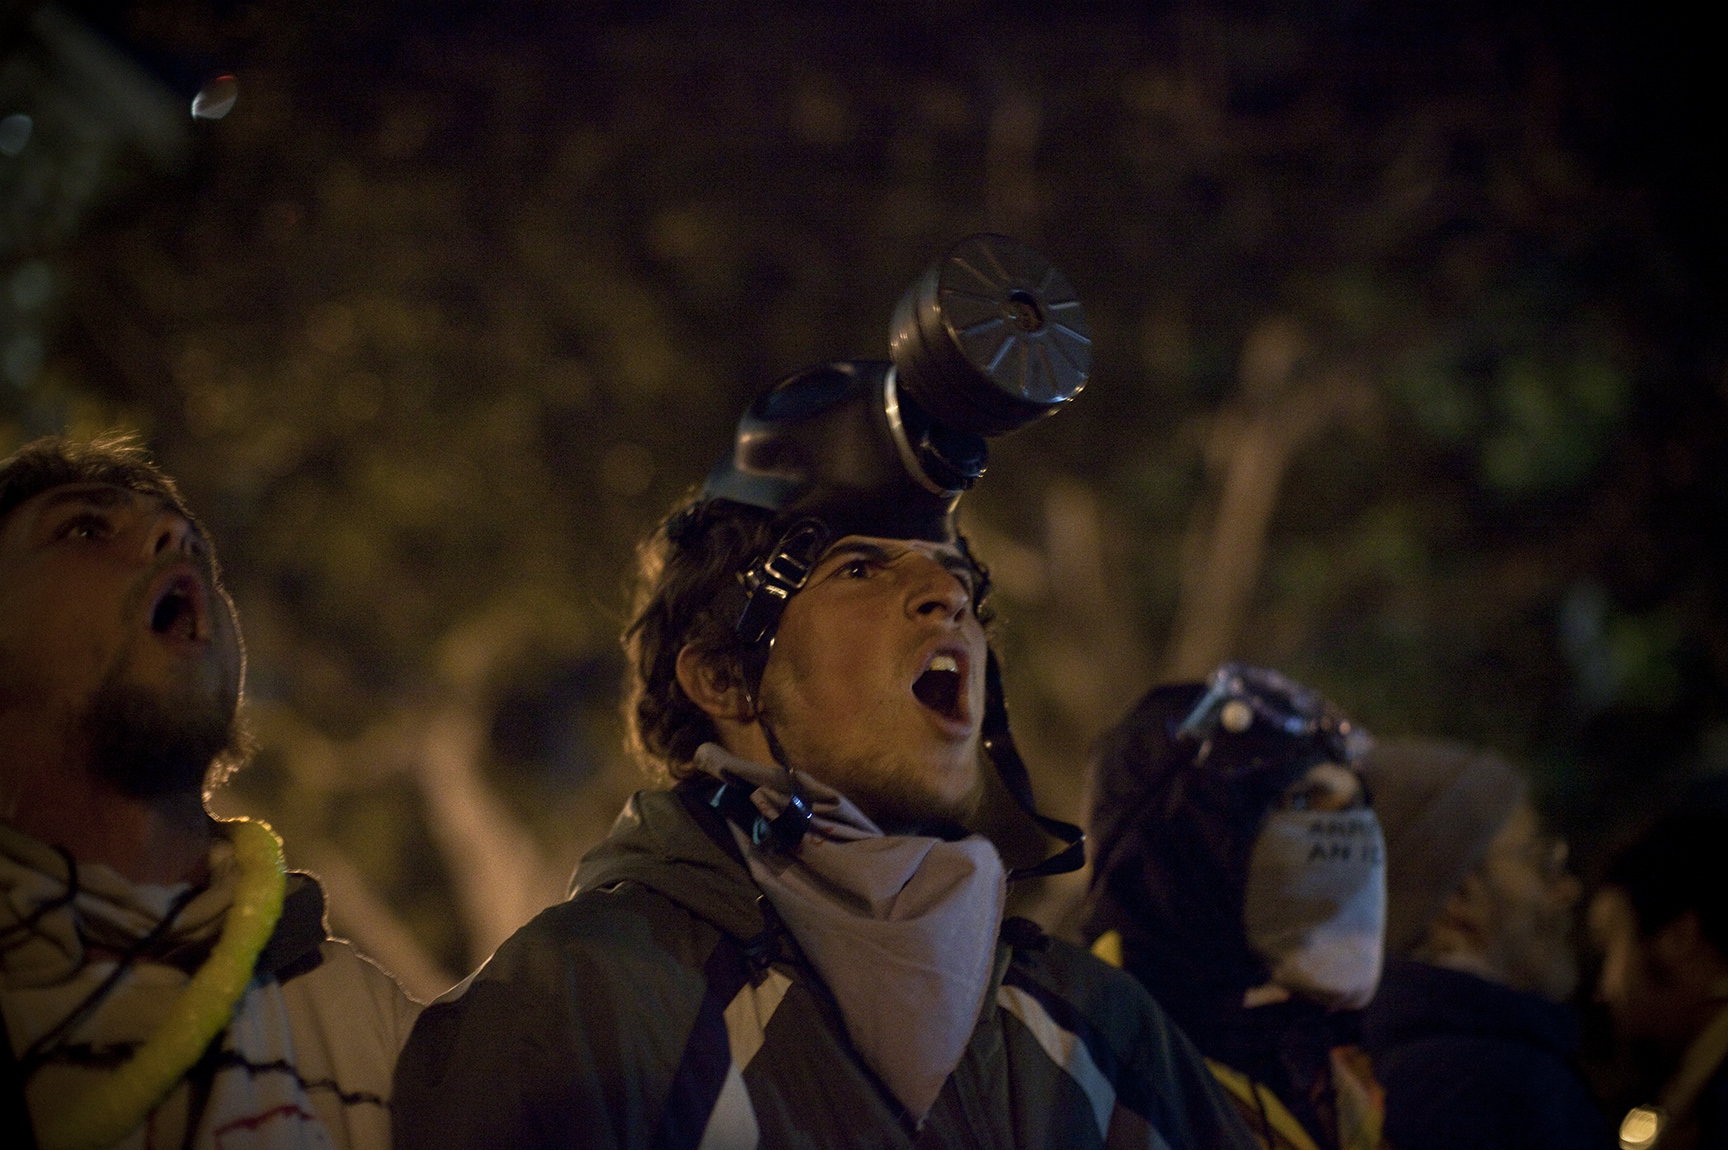 Occupy Los Angeles - As the deadline to disperse approached, protesters stood their ground on the City Hall lawn waiting for the inevitable arrests. More than 1,400 LA police officers cleared the area,arresting 200.